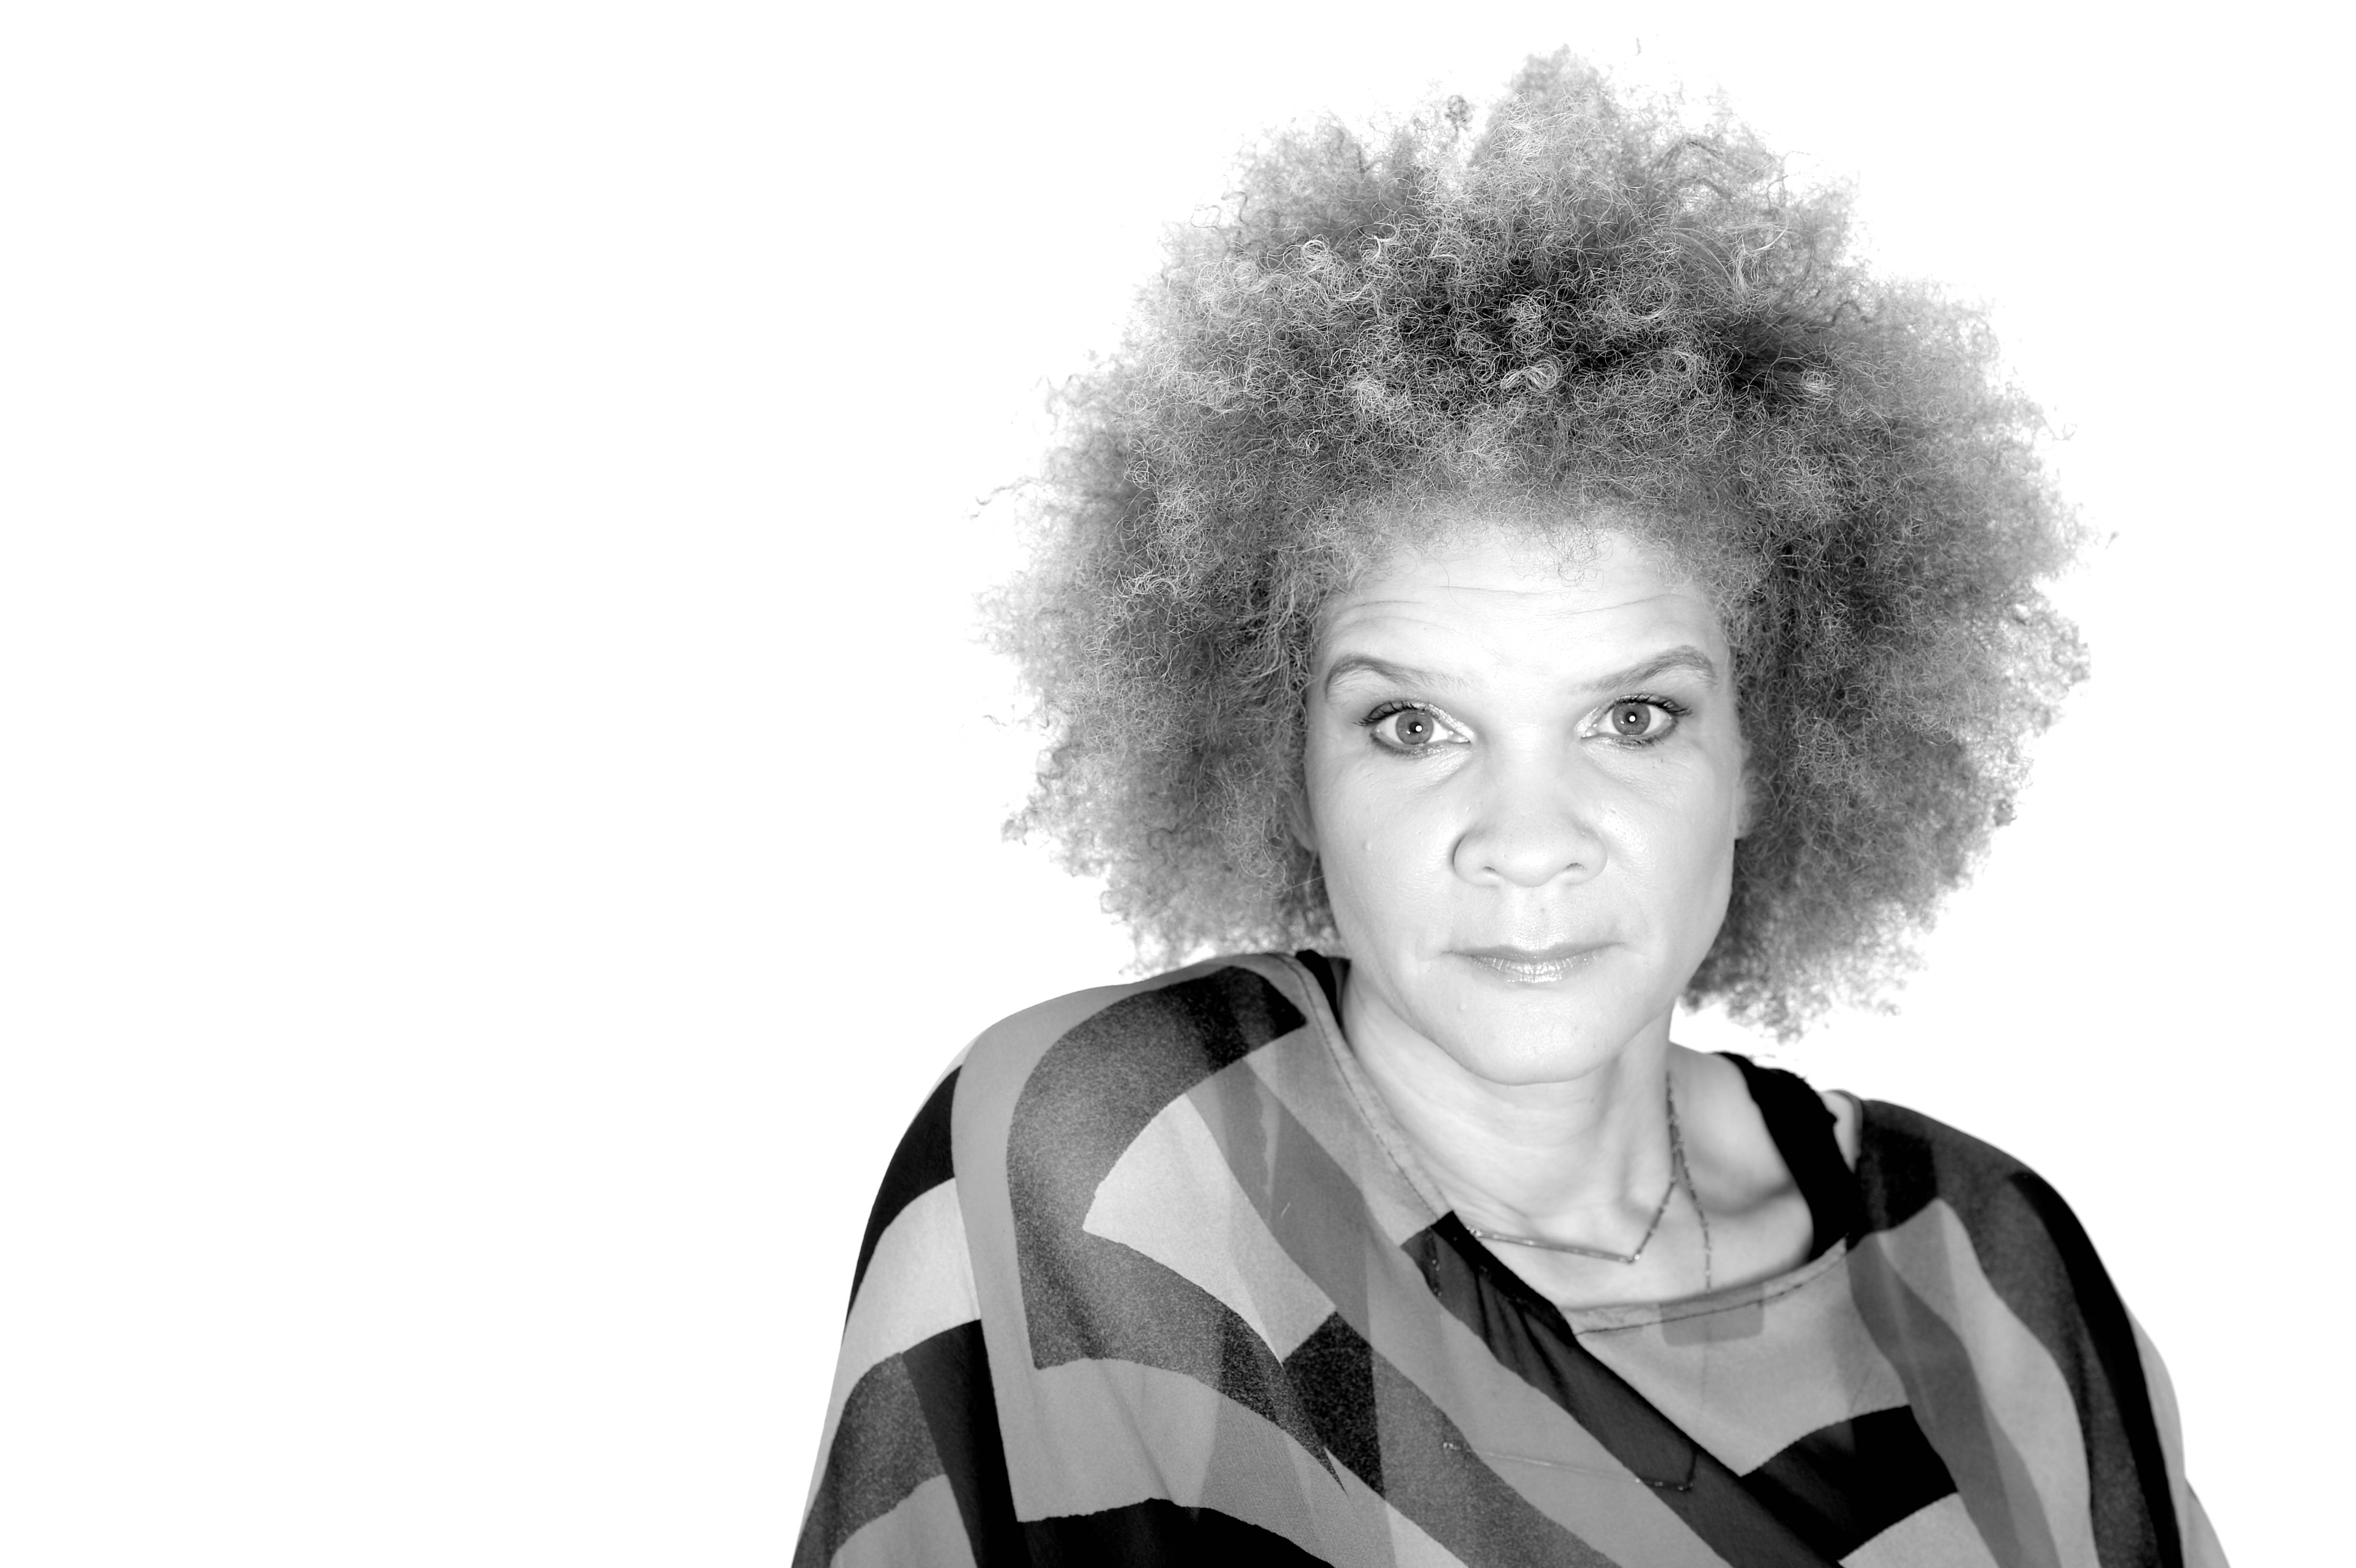 """Michaela Angela Davis - The activist and writer strives to incorporate a sense of excitement in her own life thanks to her mother, a woman who constantly reminded Davis that """"life could be magical."""" And at the age of 75, it's a mentality that her mother carries to this day. """"The best thing that my mother gave me was the example of how she is living her life. She stayed really involved in the adventure of her own life,"""" Davis said. (Photo: BET)"""